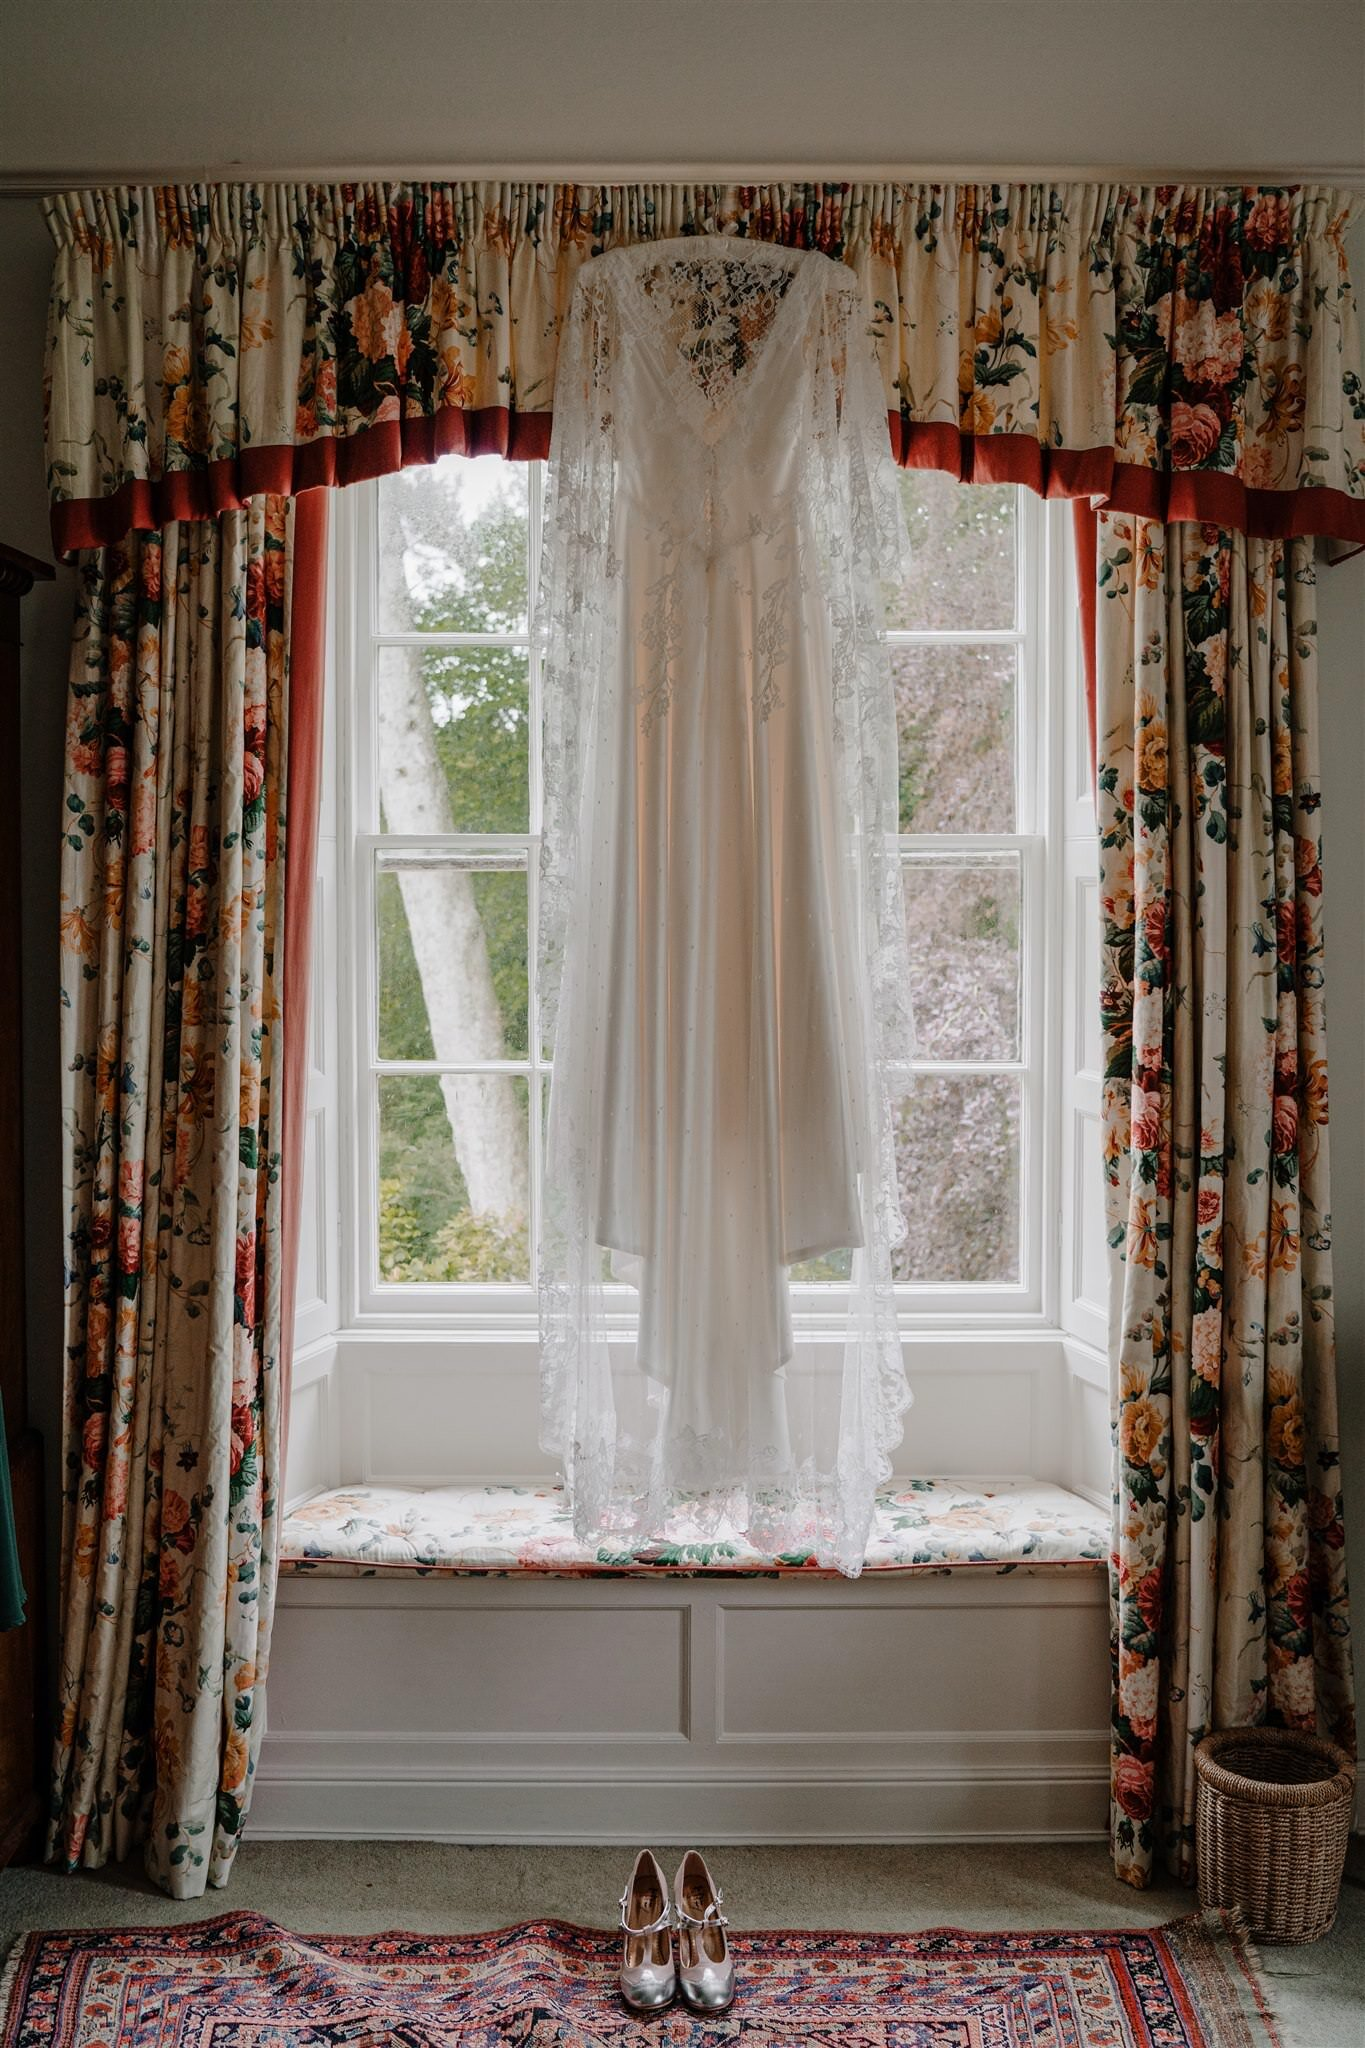 Custom Alison Jayne couture wedding dress hanging Tullyveery house window